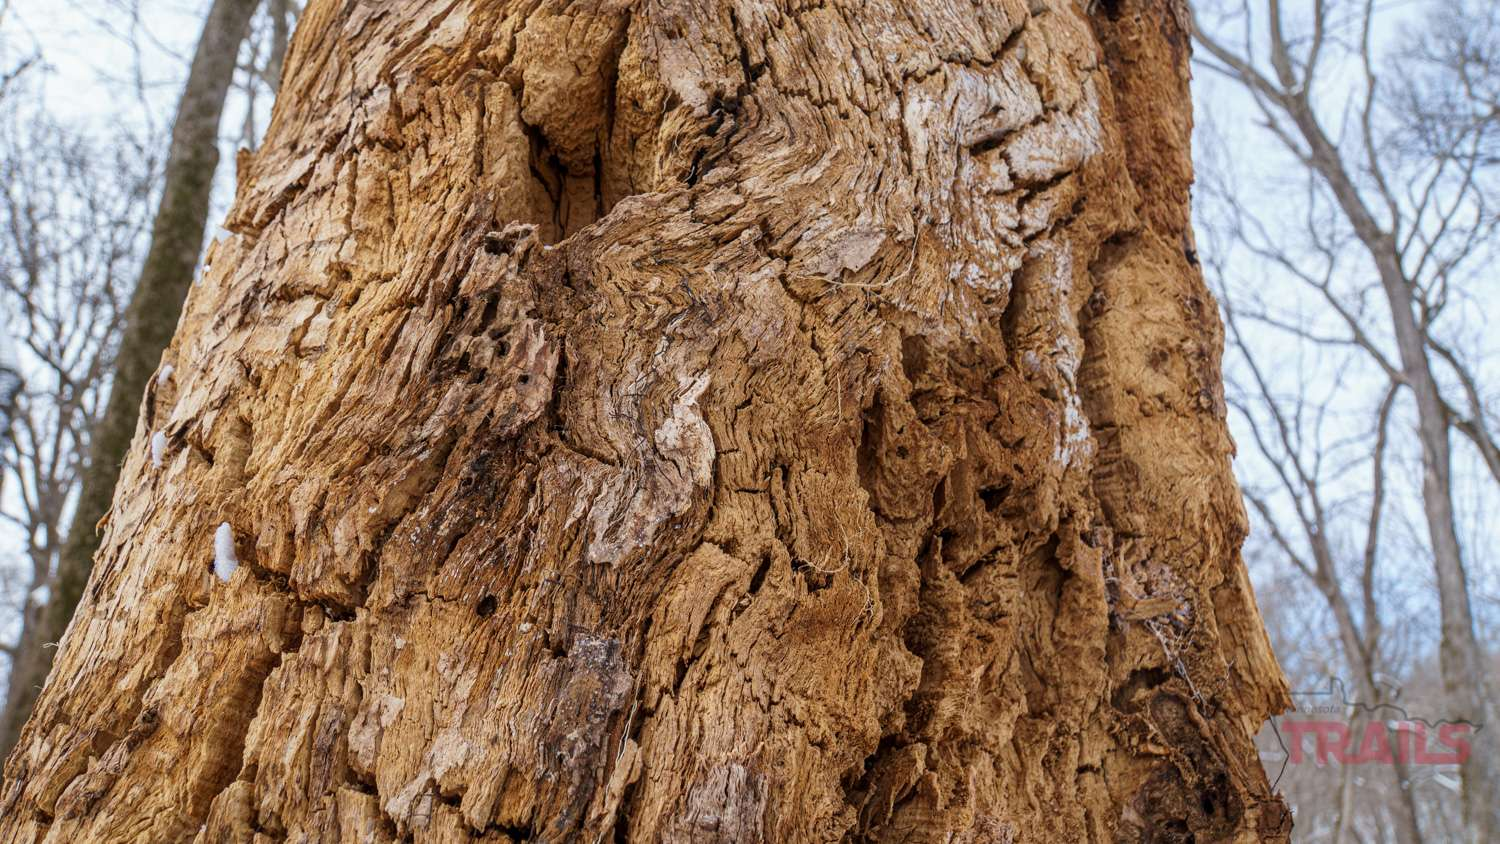 Closeup of a decaying tree trunk